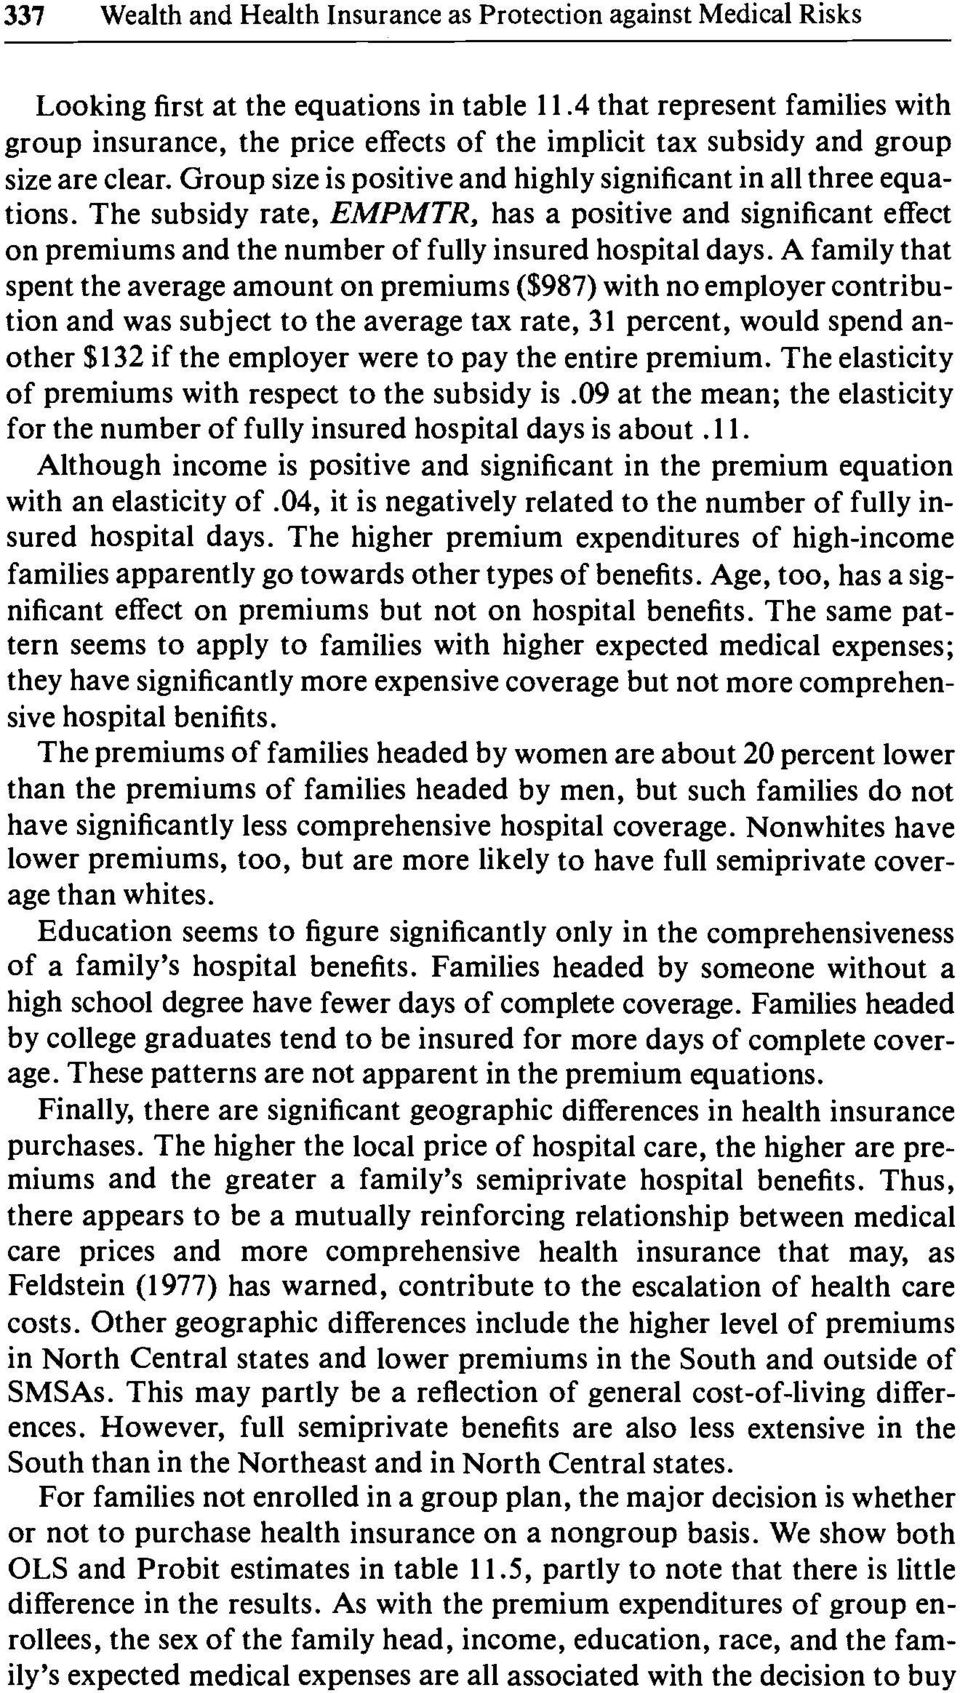 The subsidy rate, EMPMTR, has a positive and significant effect on premiums and the number of fully insured hospital days.